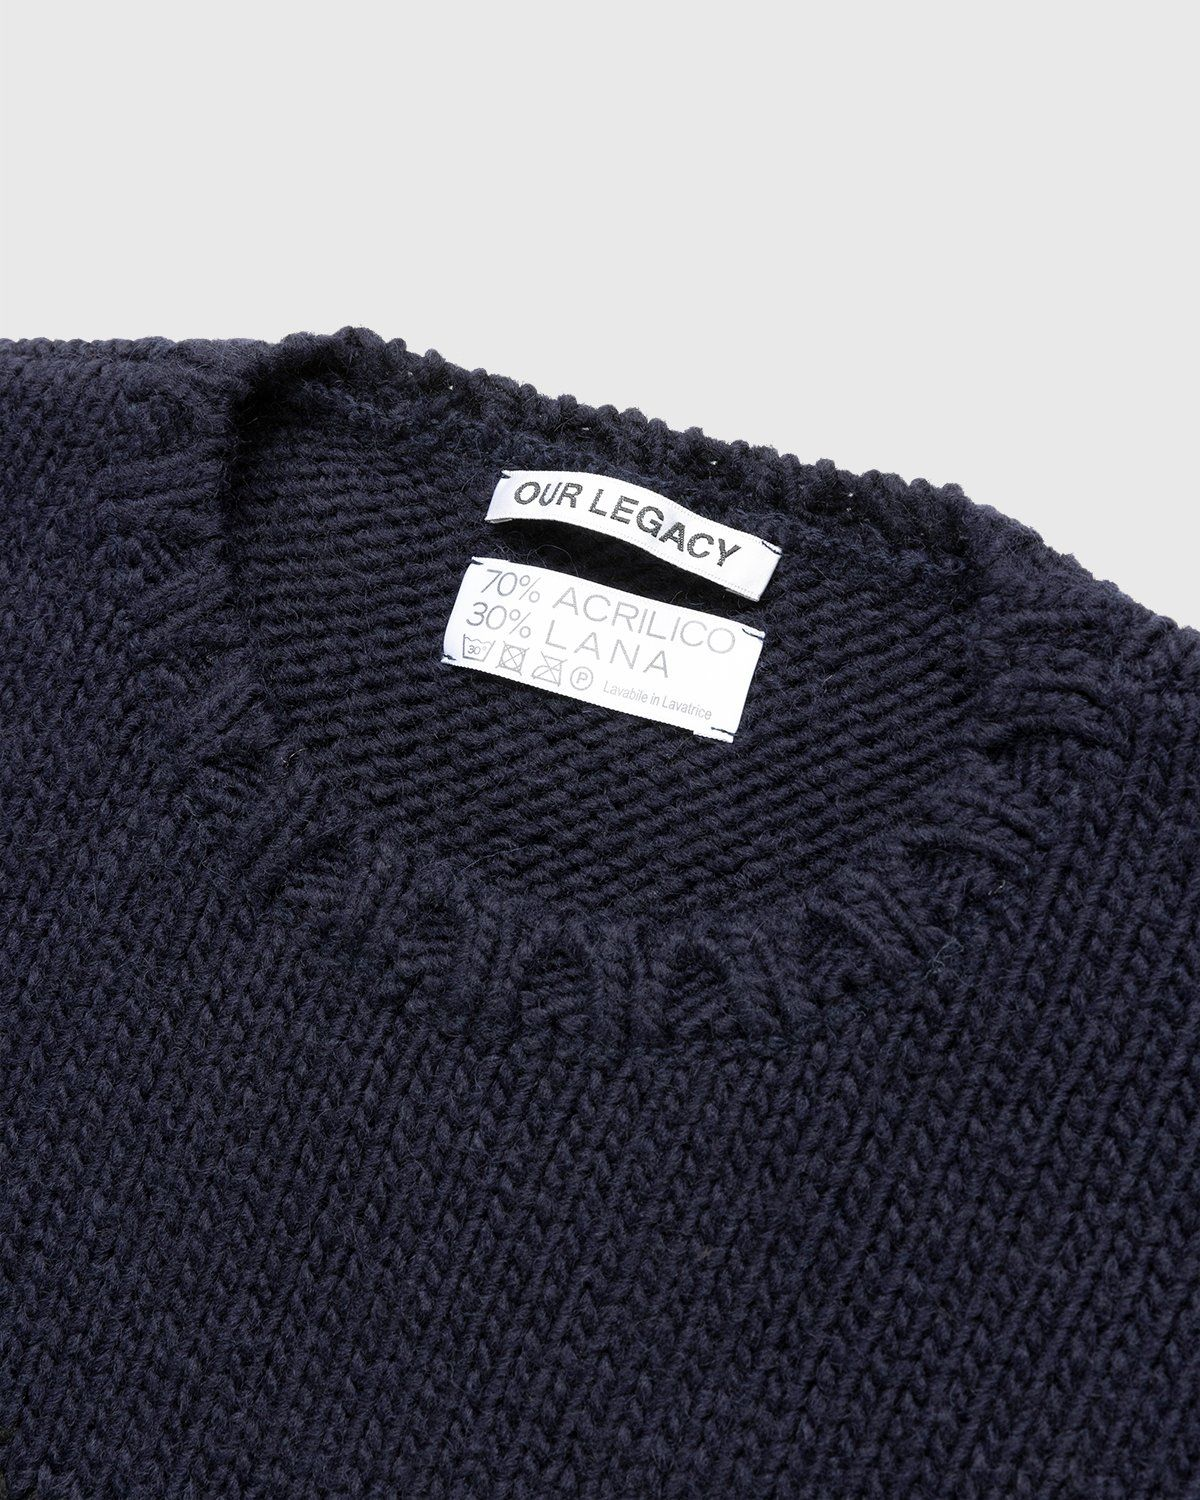 Our Legacy – Popover Roundneck Lucky Lover Black - Image 3